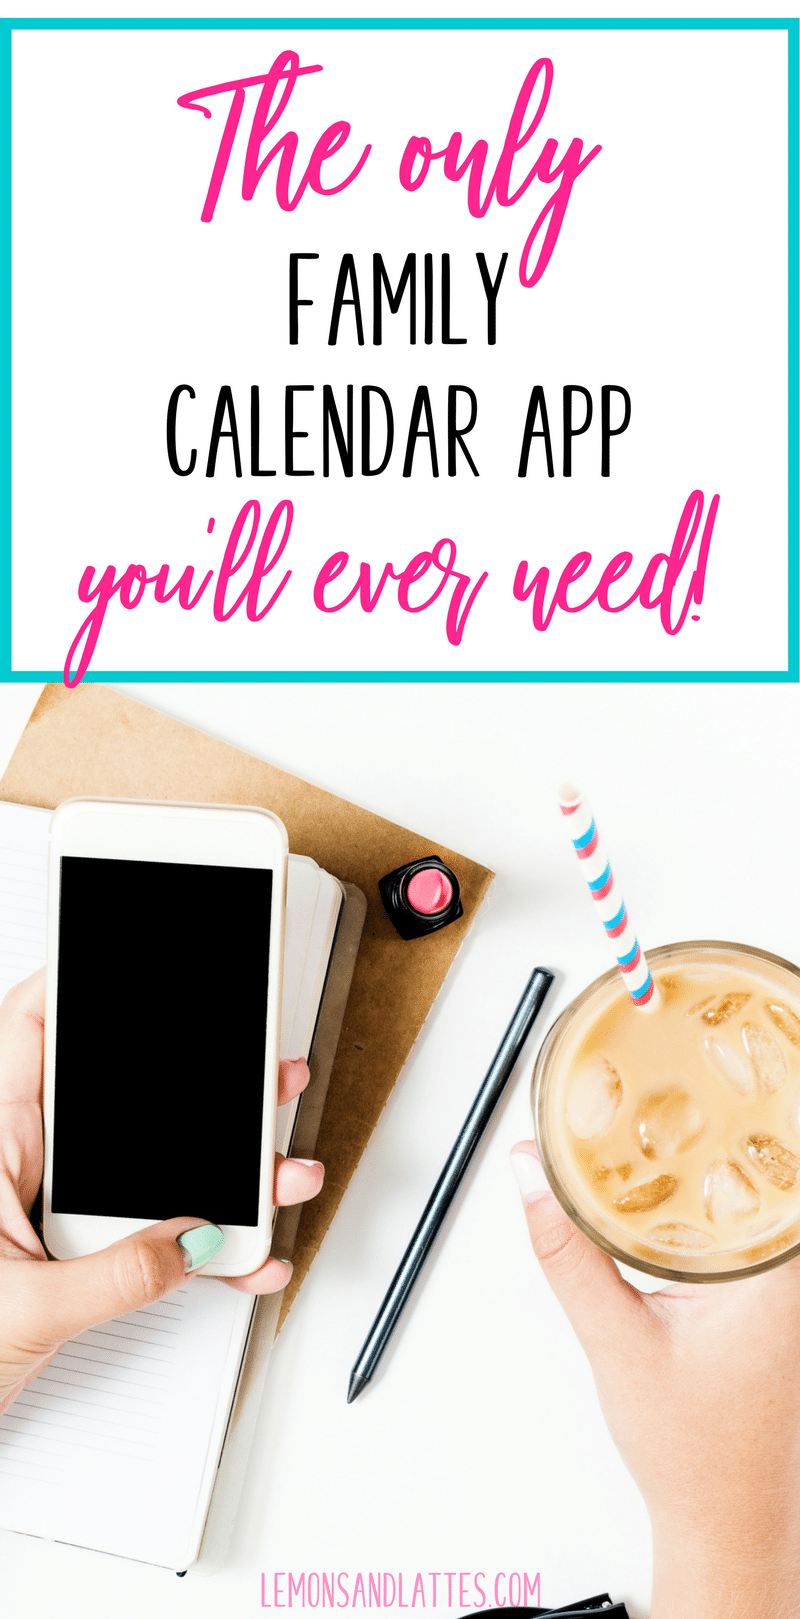 Looking for the best family calendar app but not sure which to pick? Here are 5 reasons why the Cozi family organizer app is the only family calendar app you'll ever need! Create a shared family calendar, shopping lists, to-do lists, and more!